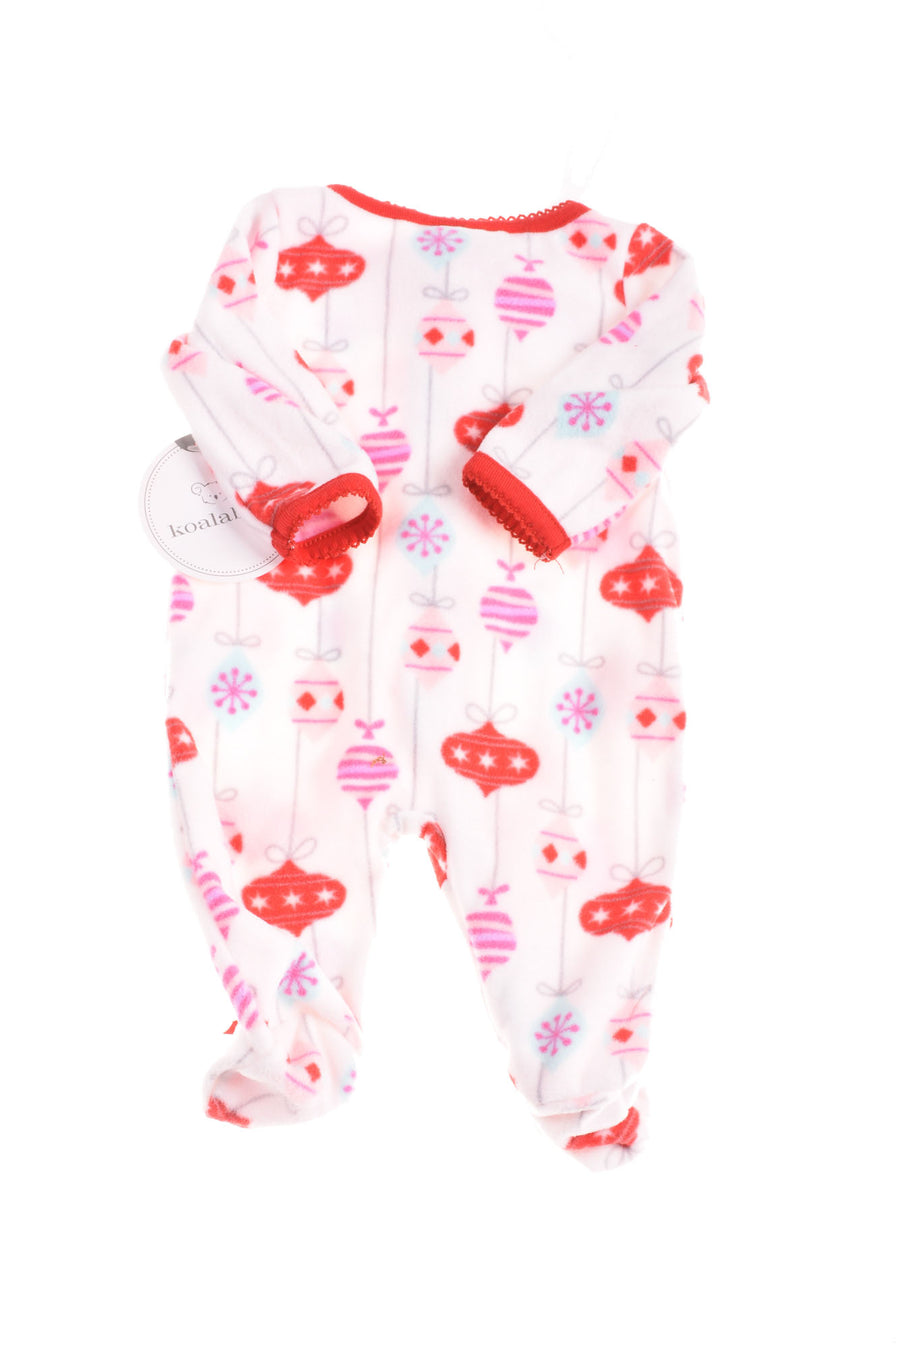 Baby Girl's Pajama Outfit By Koala Baby